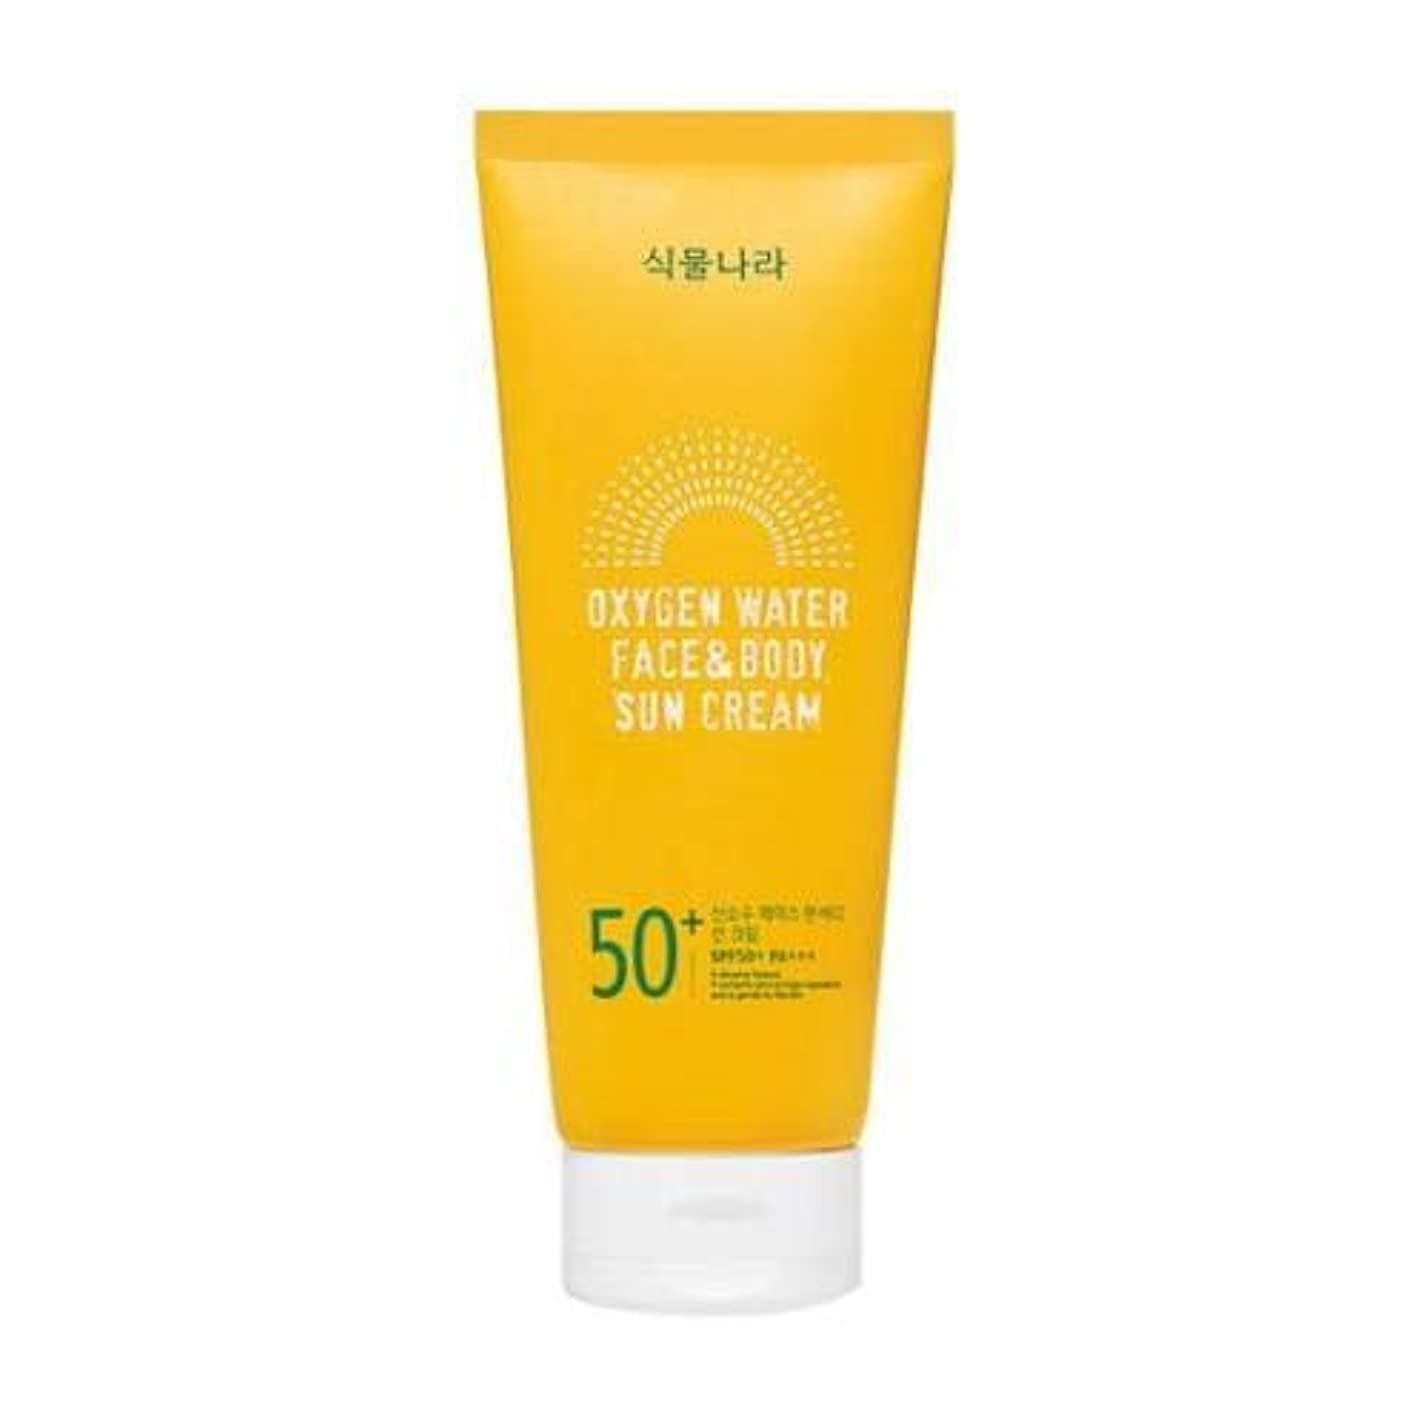 震え名前熱心なshingmulnara Oxygen Water Face & Body sun cream サンクリーム (200ml) SPF50+ PA+++